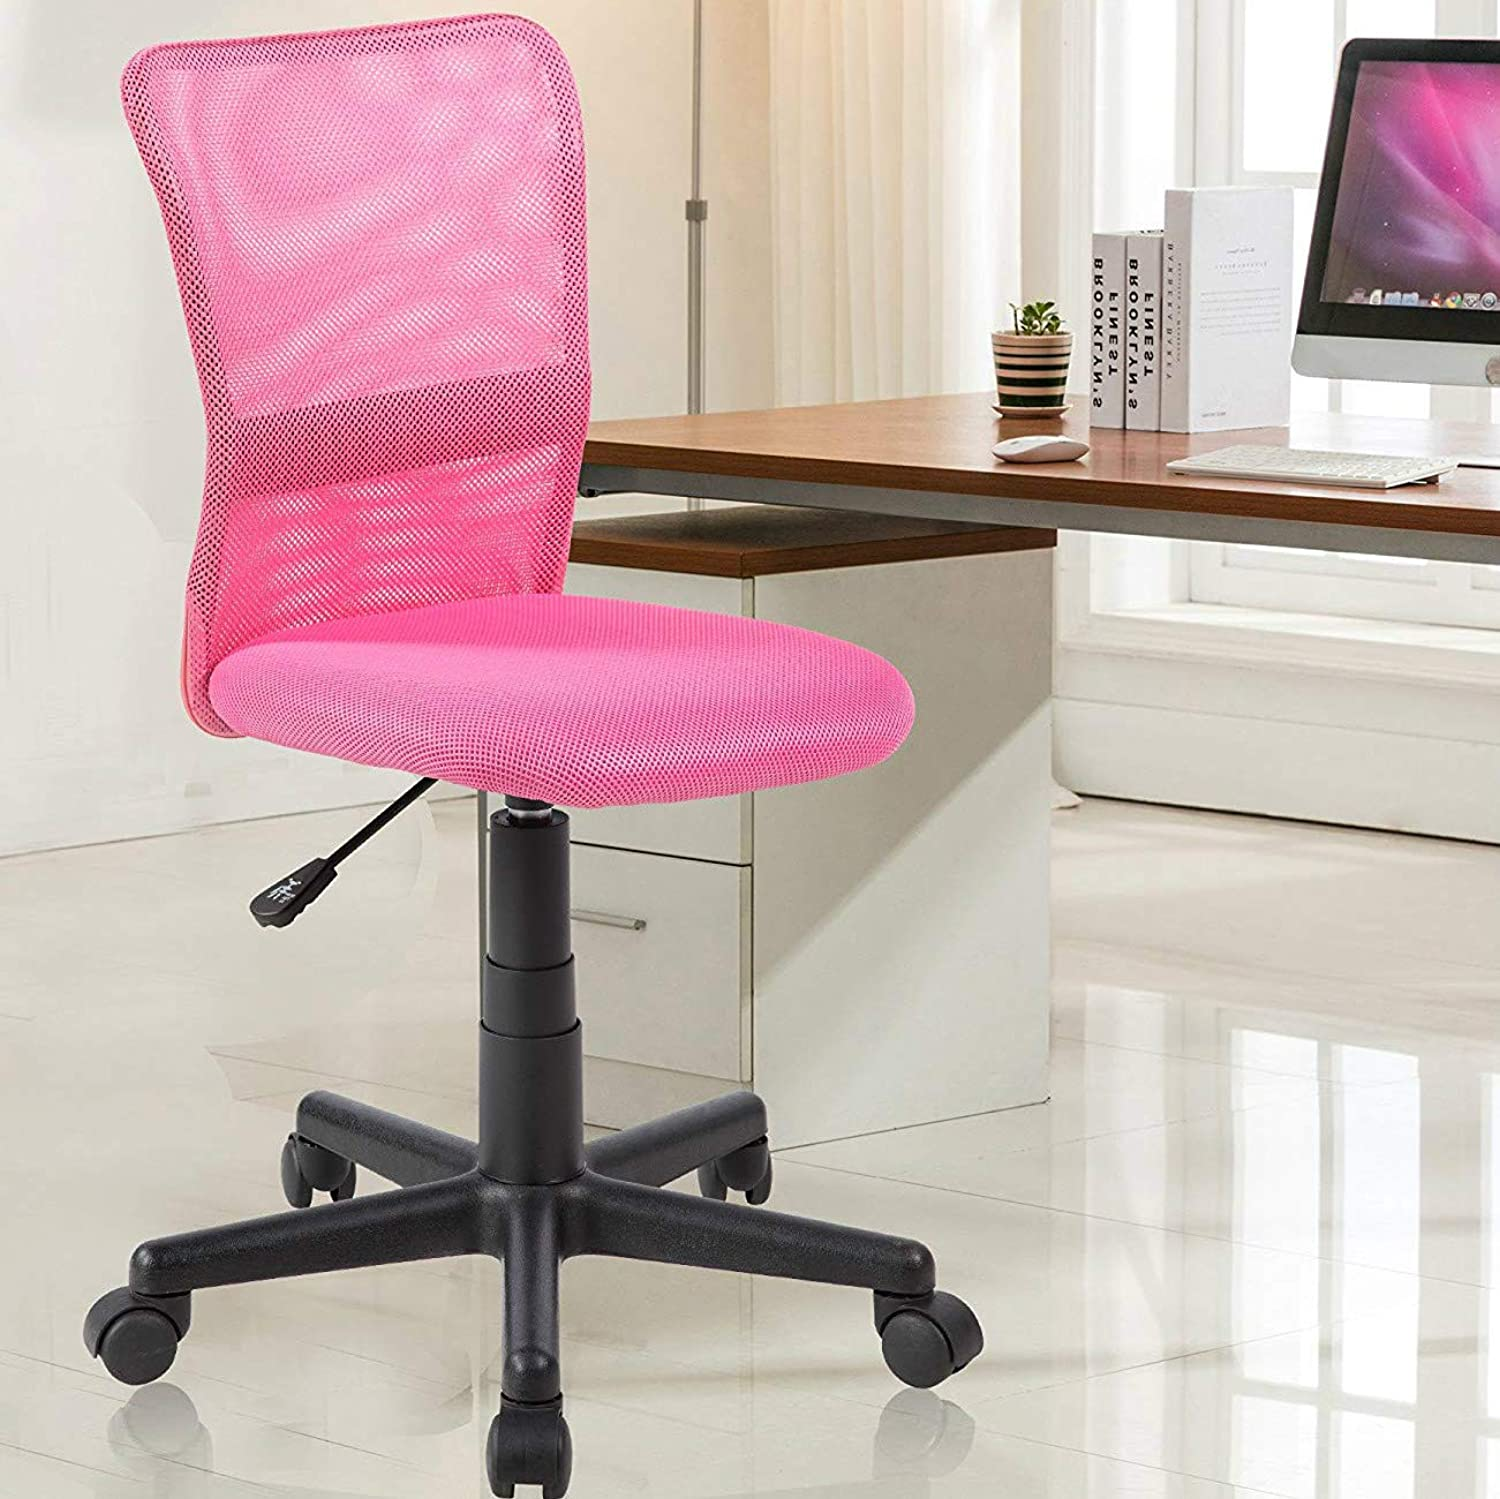 NORDIN Kids Desk Chair for Girls Adjustable Ergonomic Mid Back Mesh Office Student Study Computer Task Chair Pink